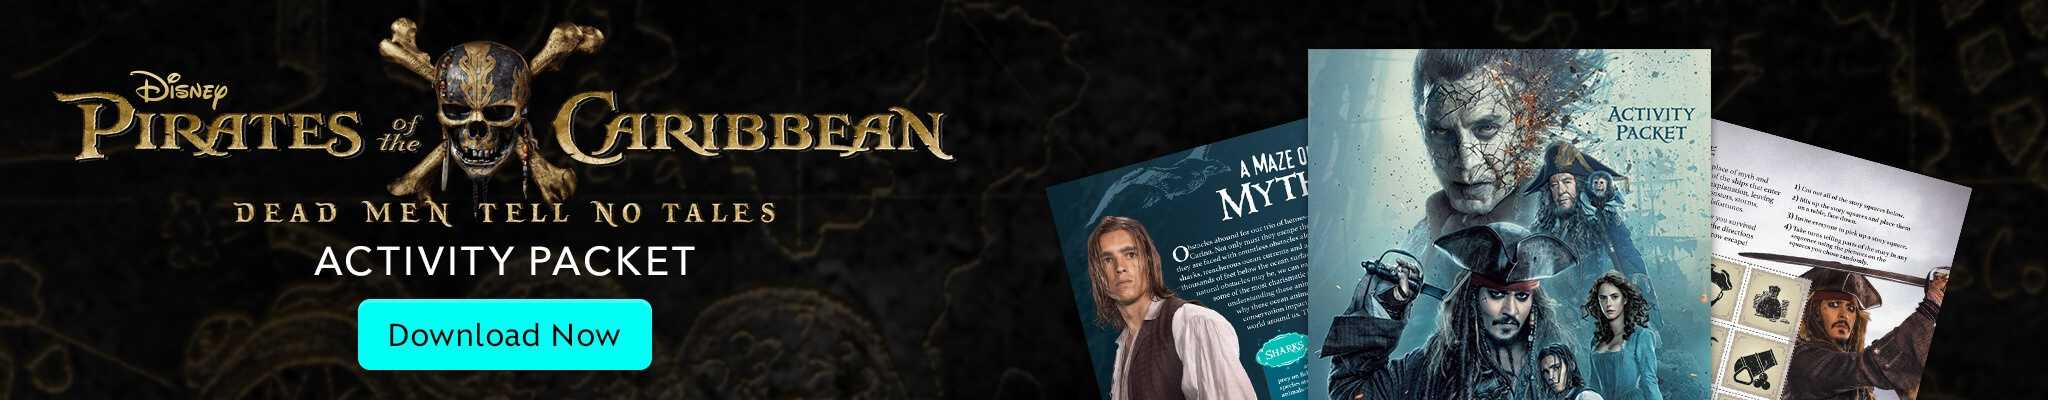 pirates of the caribbean activity packed download now